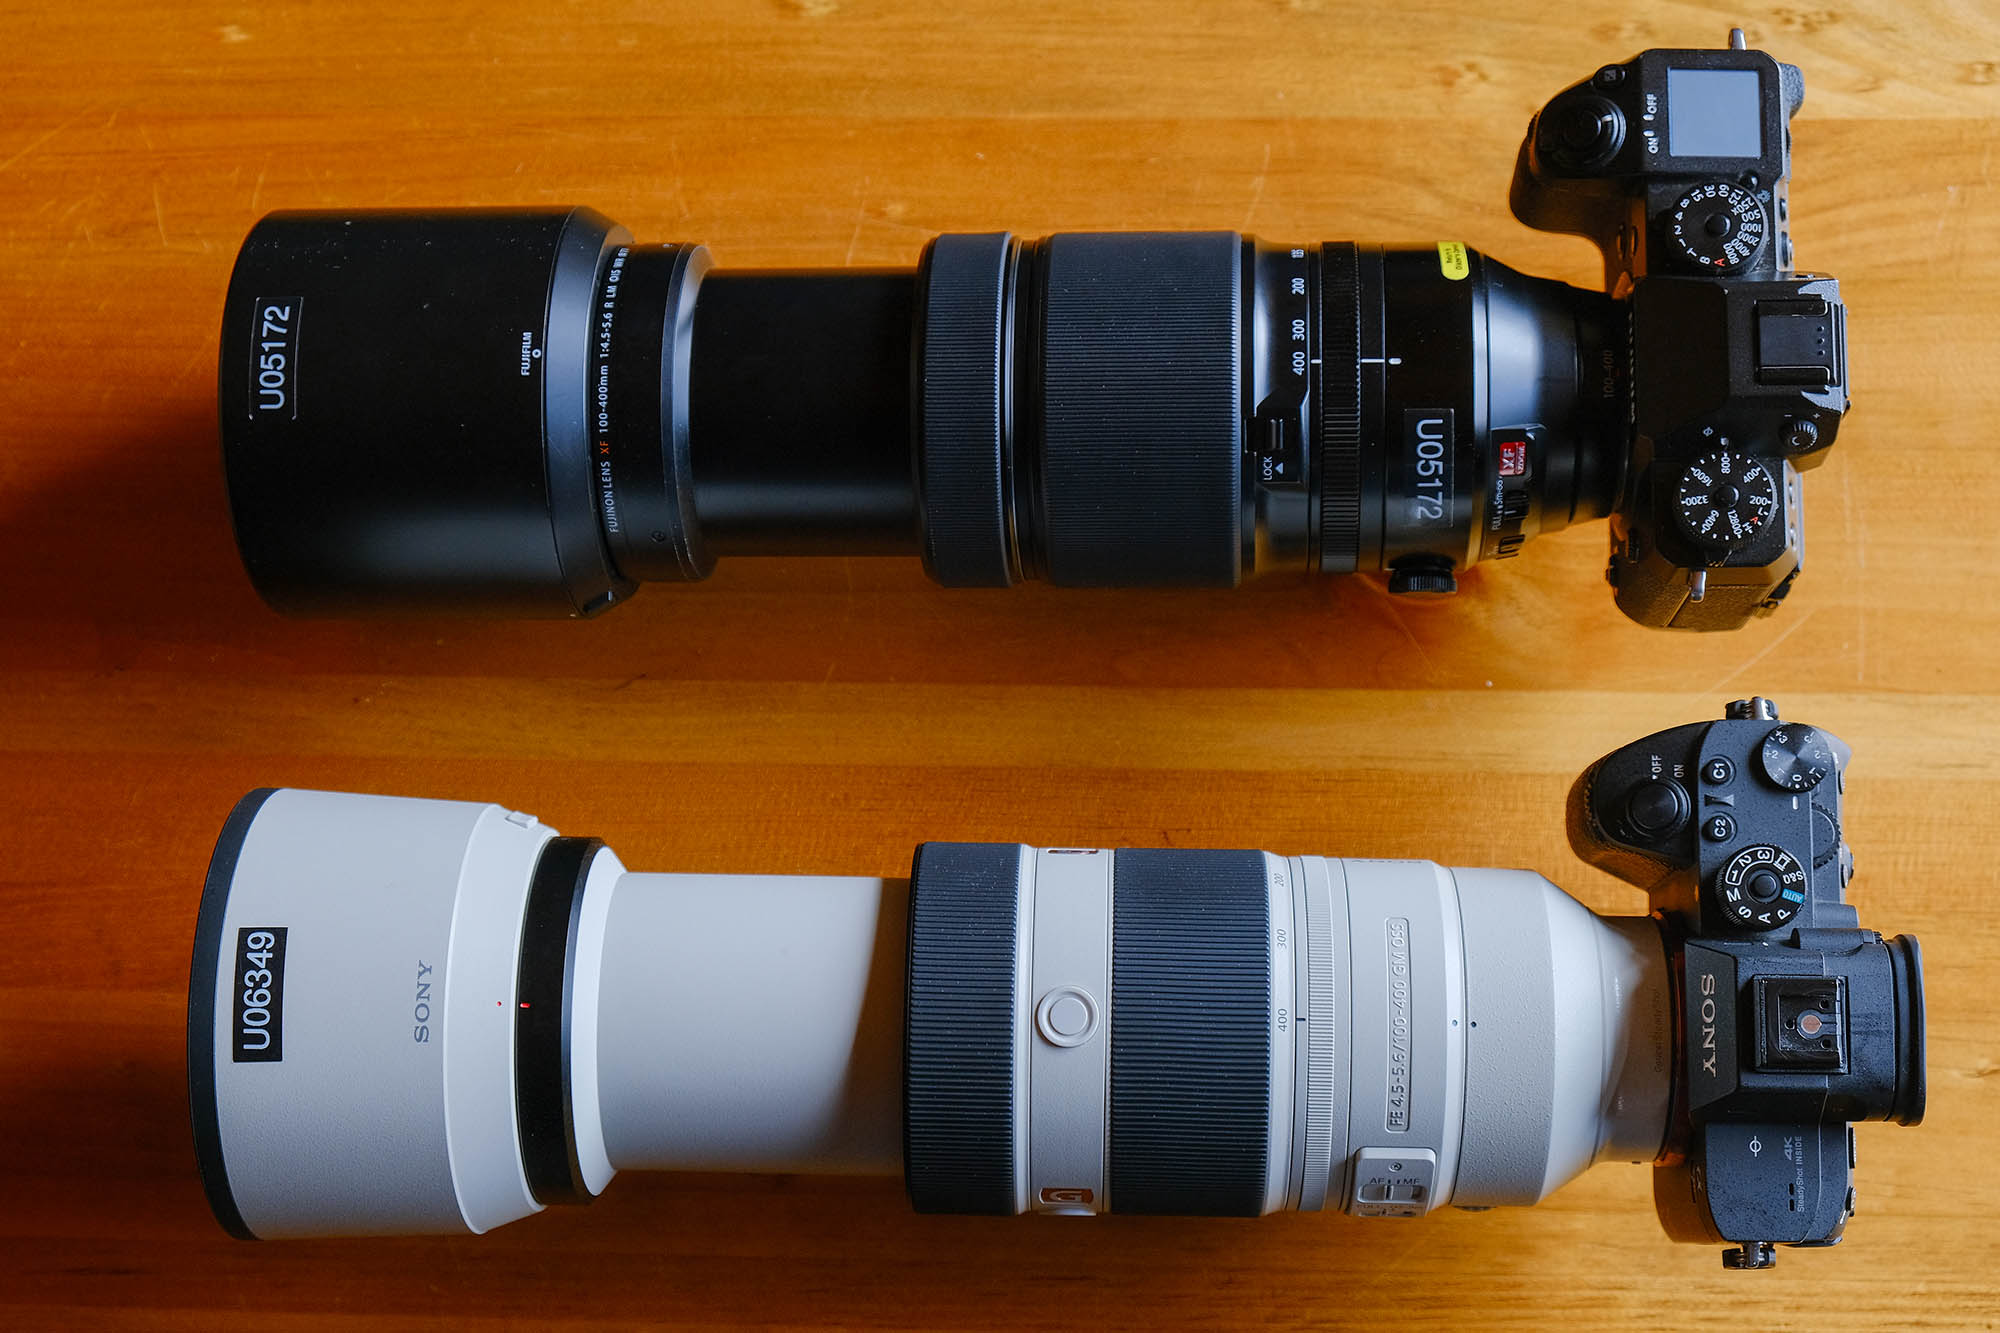 Sony-100-400mm-lens-with-Sony-A7rIII